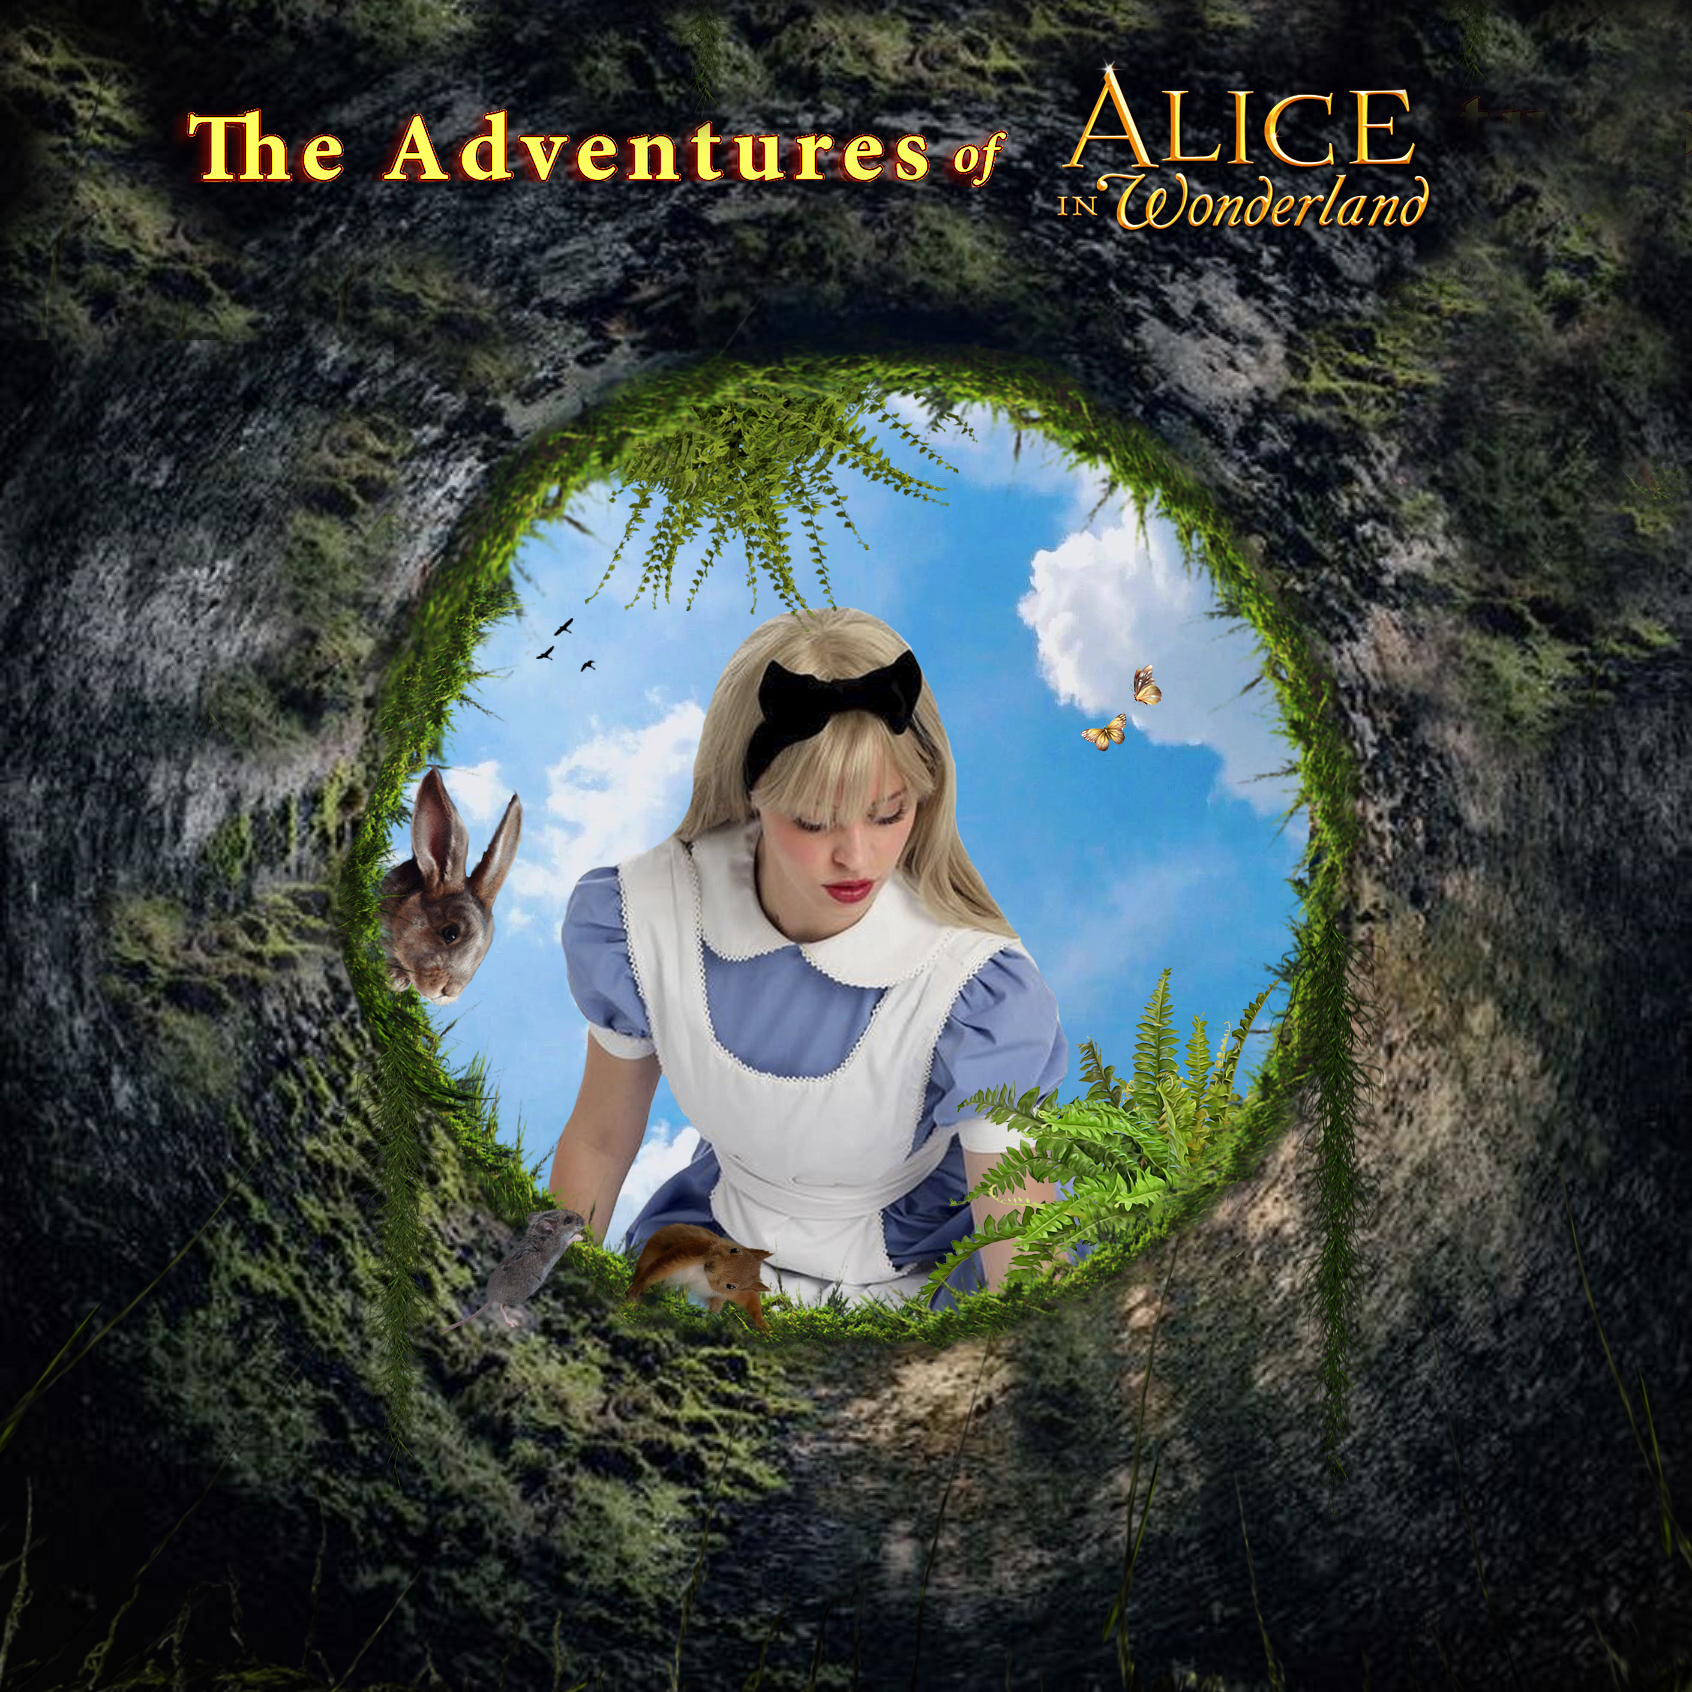 The Adventures of Alice in Wonderland, for all my